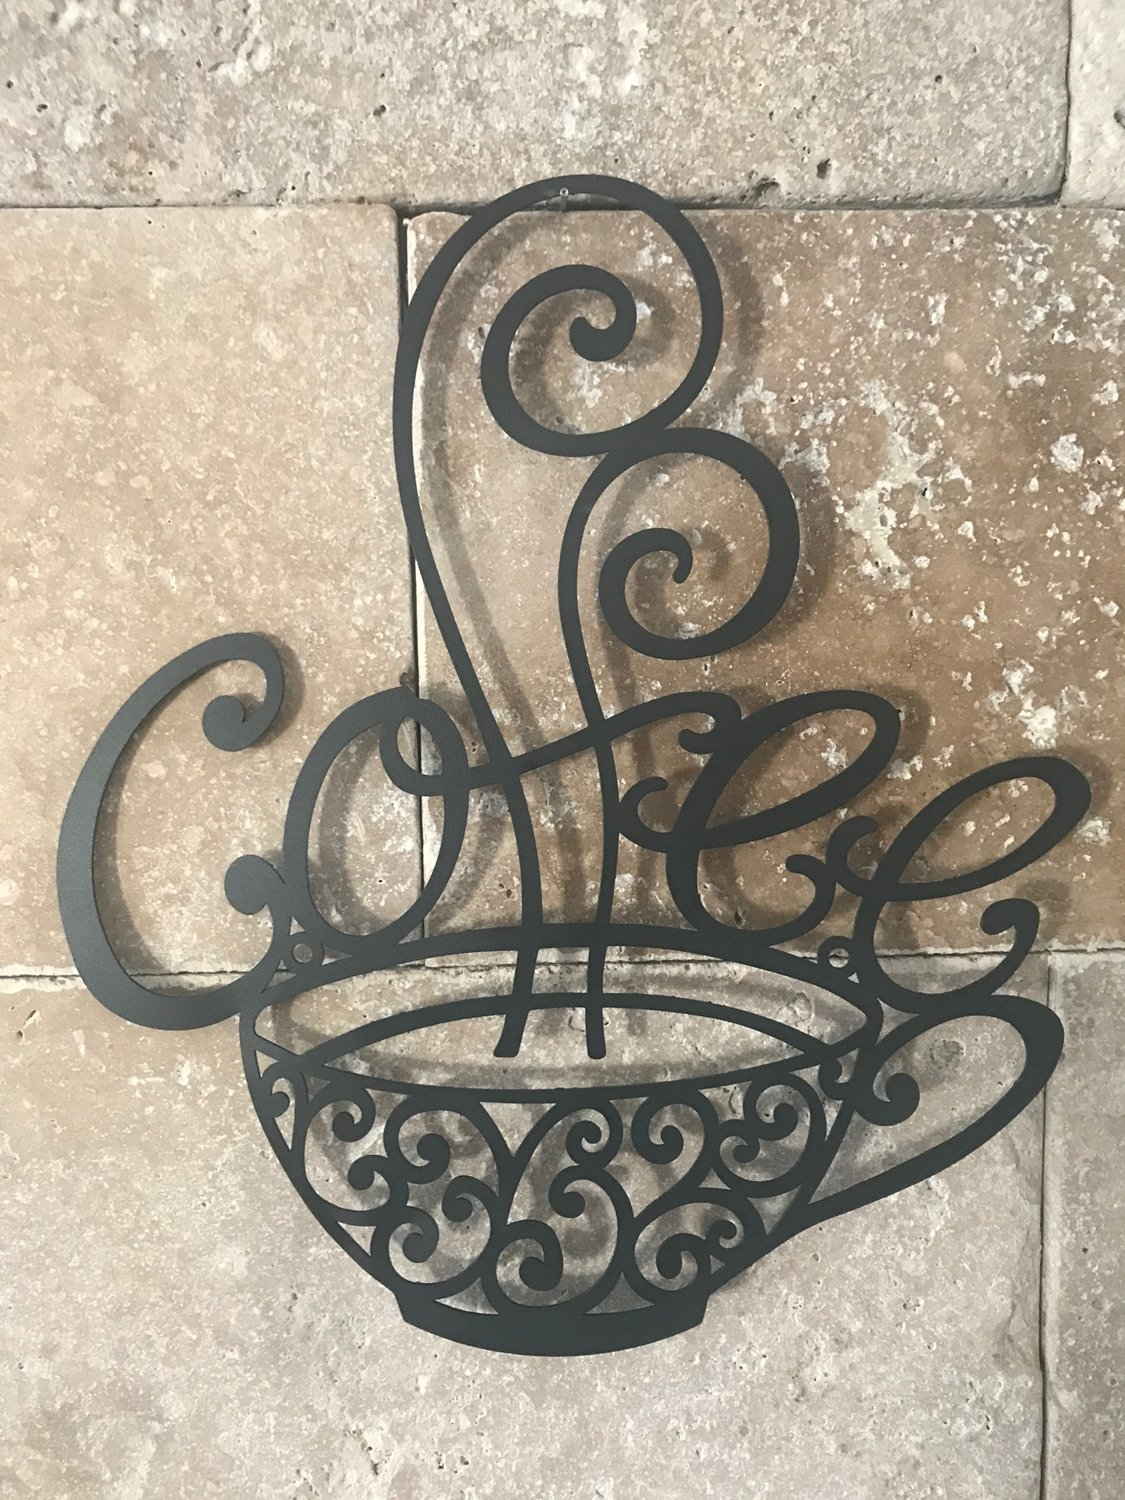 Scrolled Silhouette Coffee Cup Mug Metal Wall Art